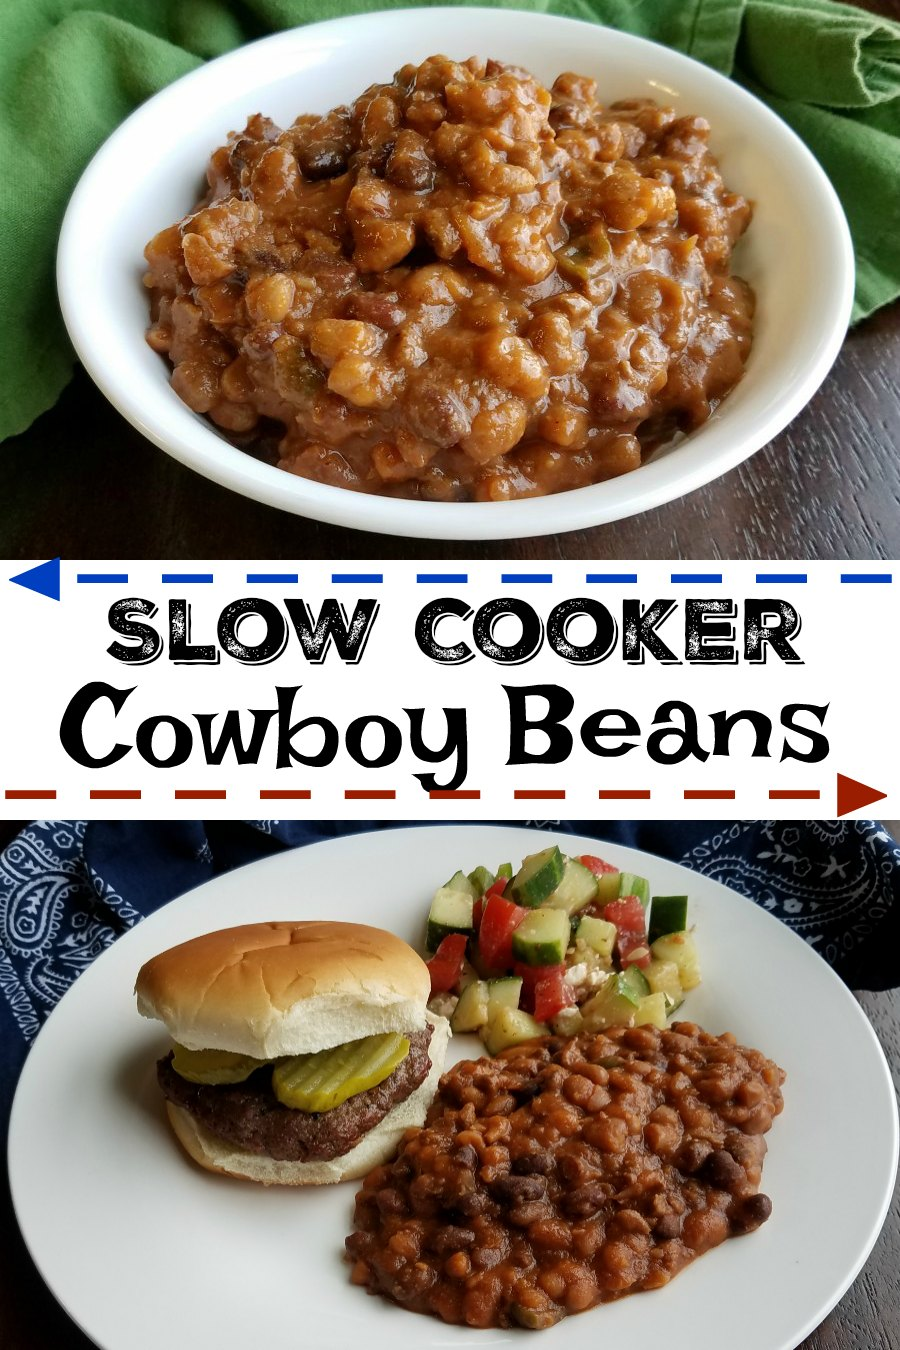 Serve up meaty delicious cowboy beans at your next bbq. They are a hearty and easy to make side dish that is made right in your slow cooker!